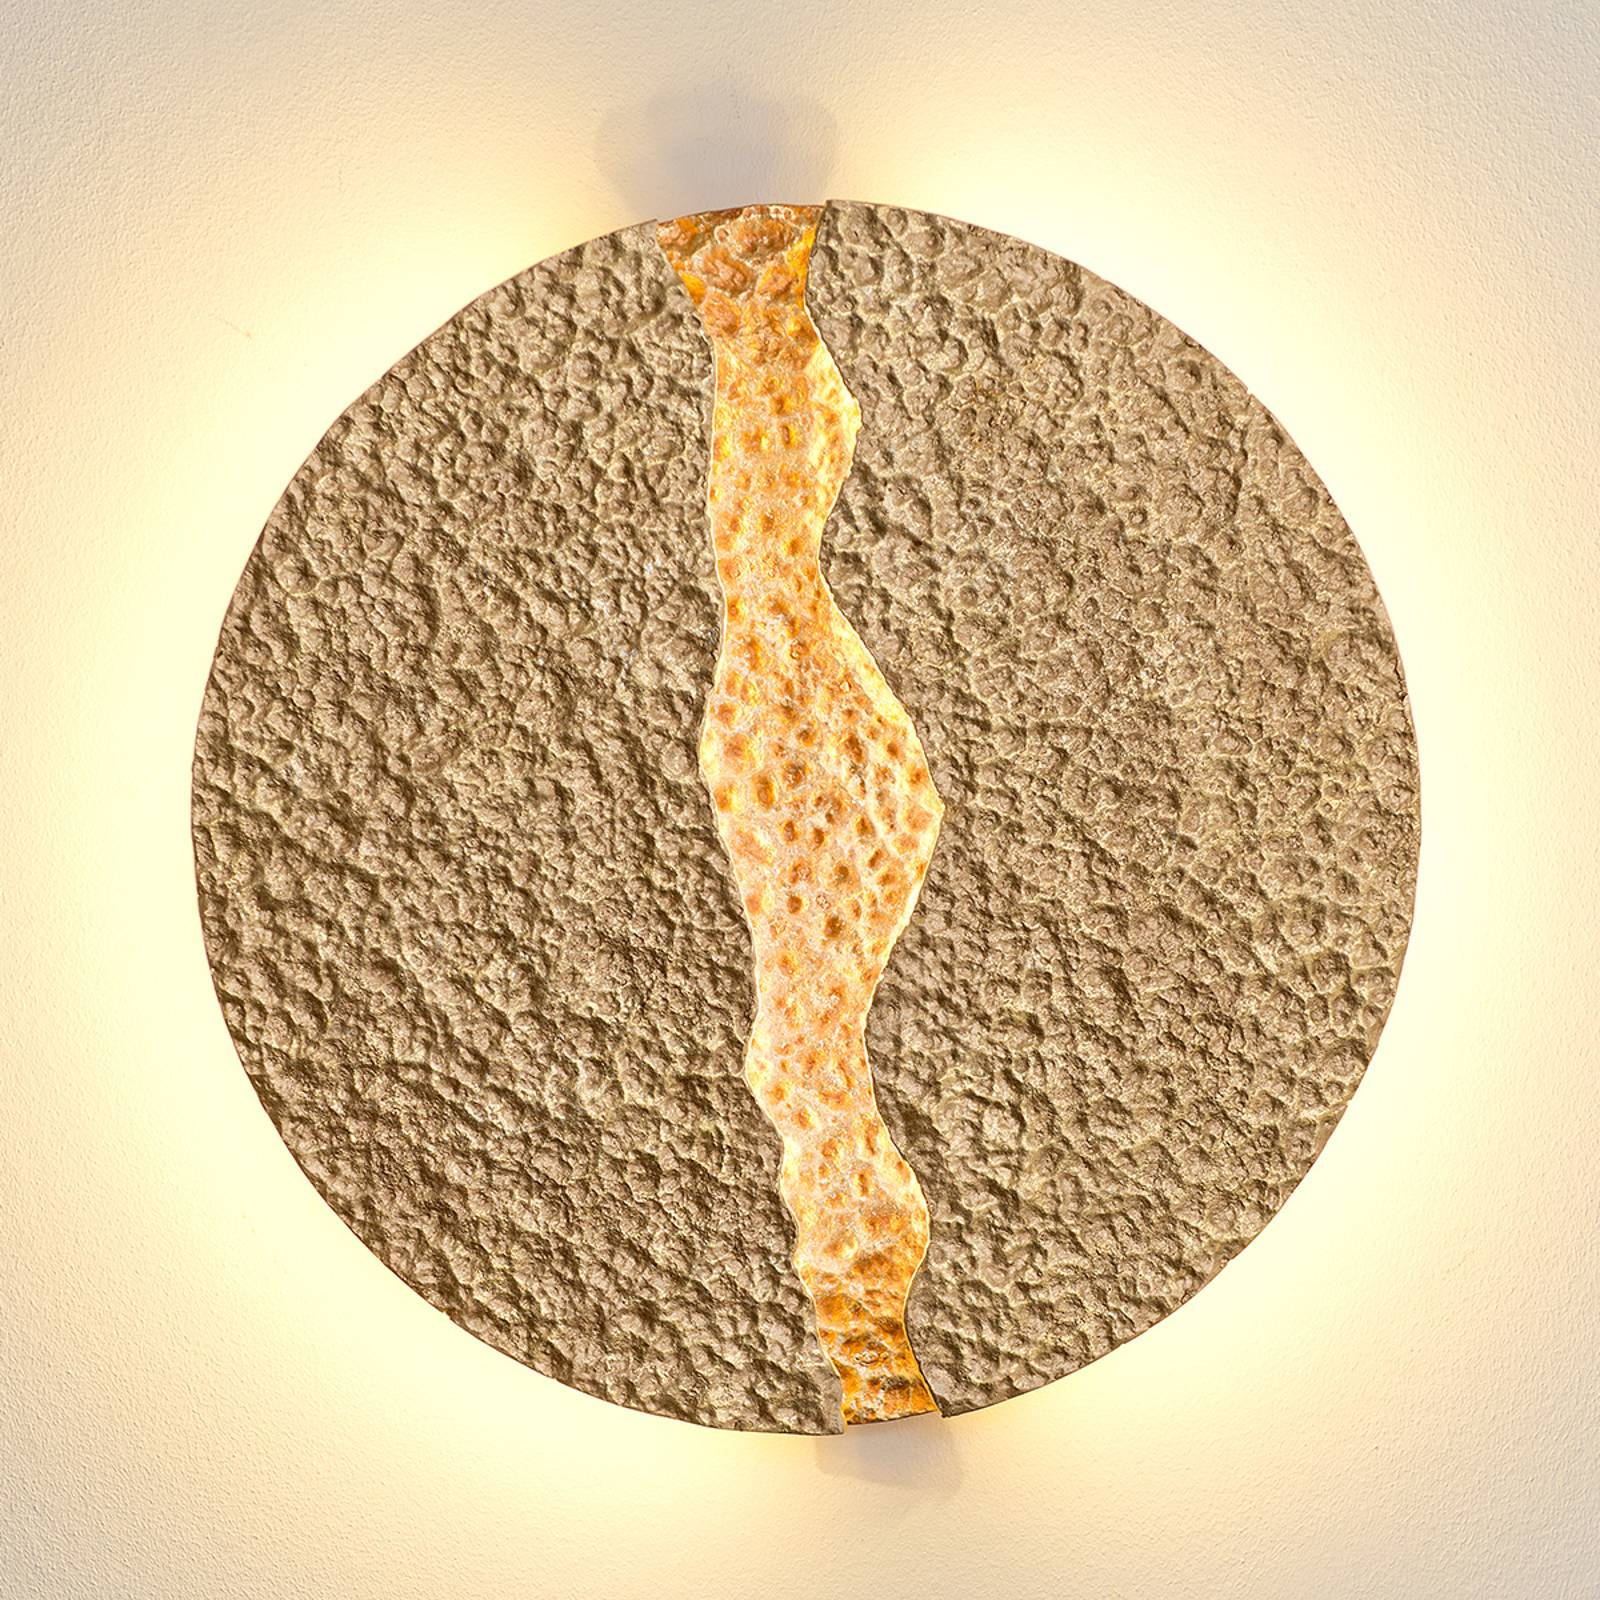 Eruption - round, gold-coloured LED wall light from J. Holländer